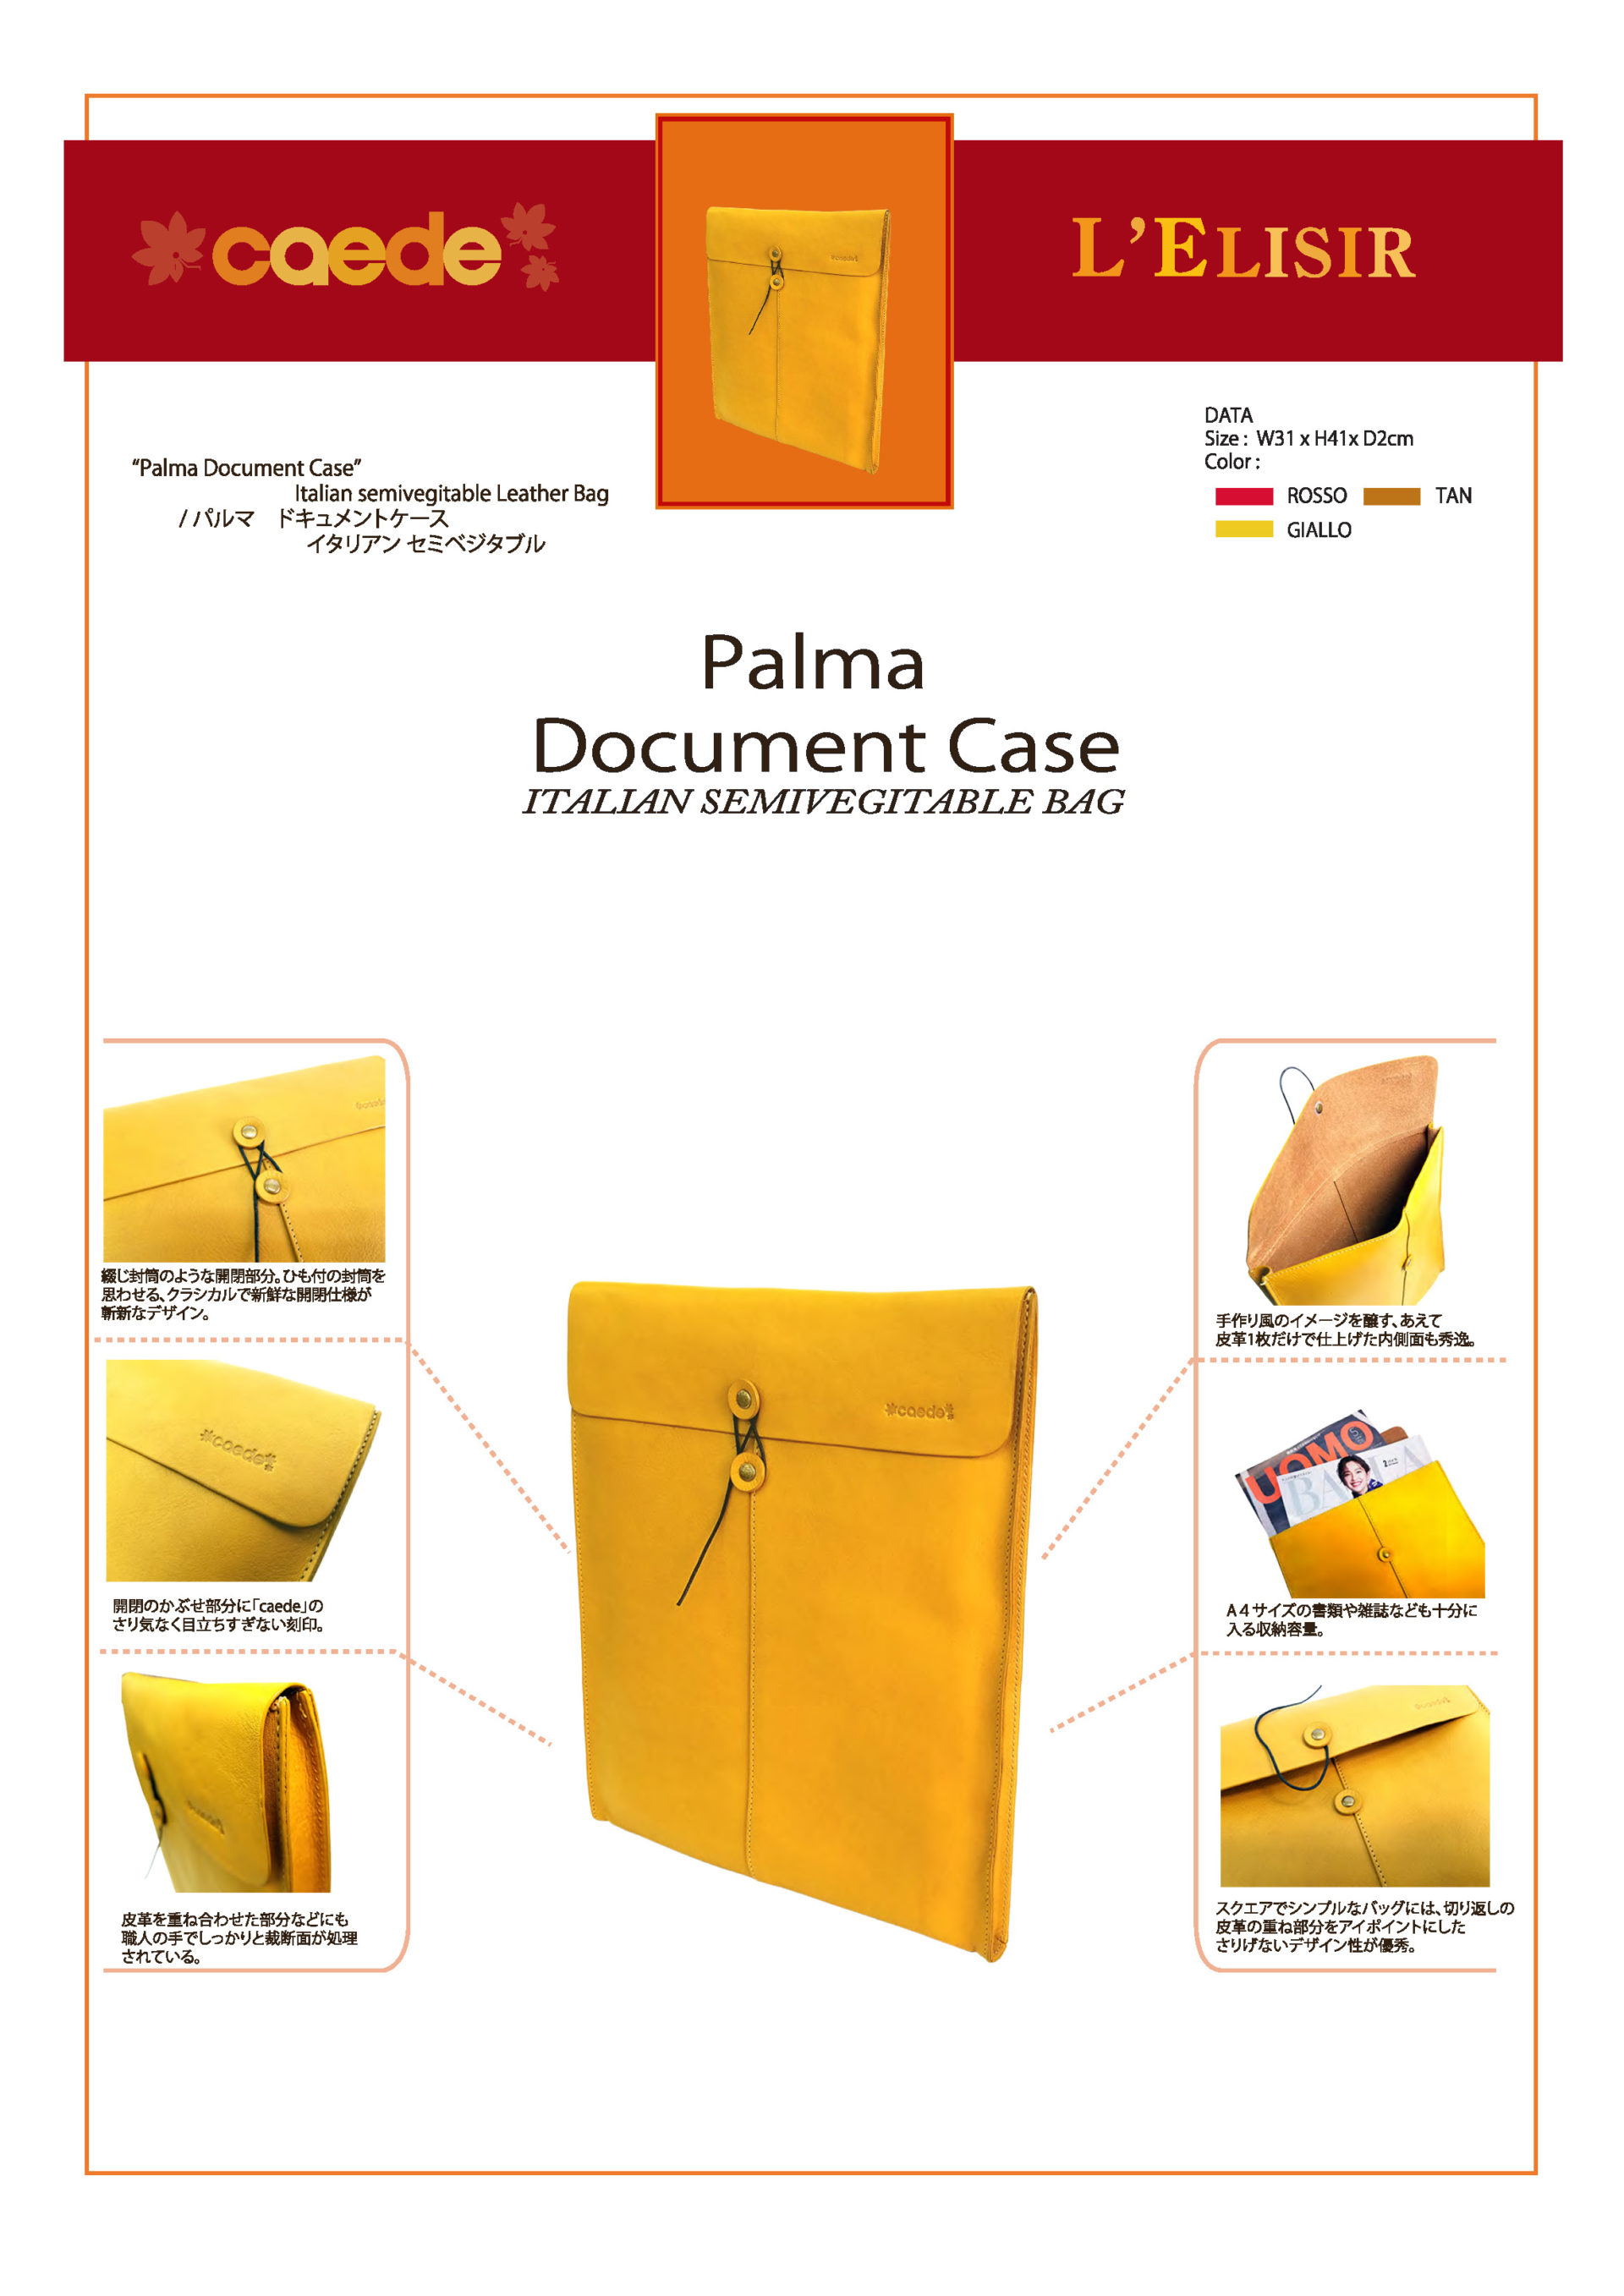 59531 palma document case